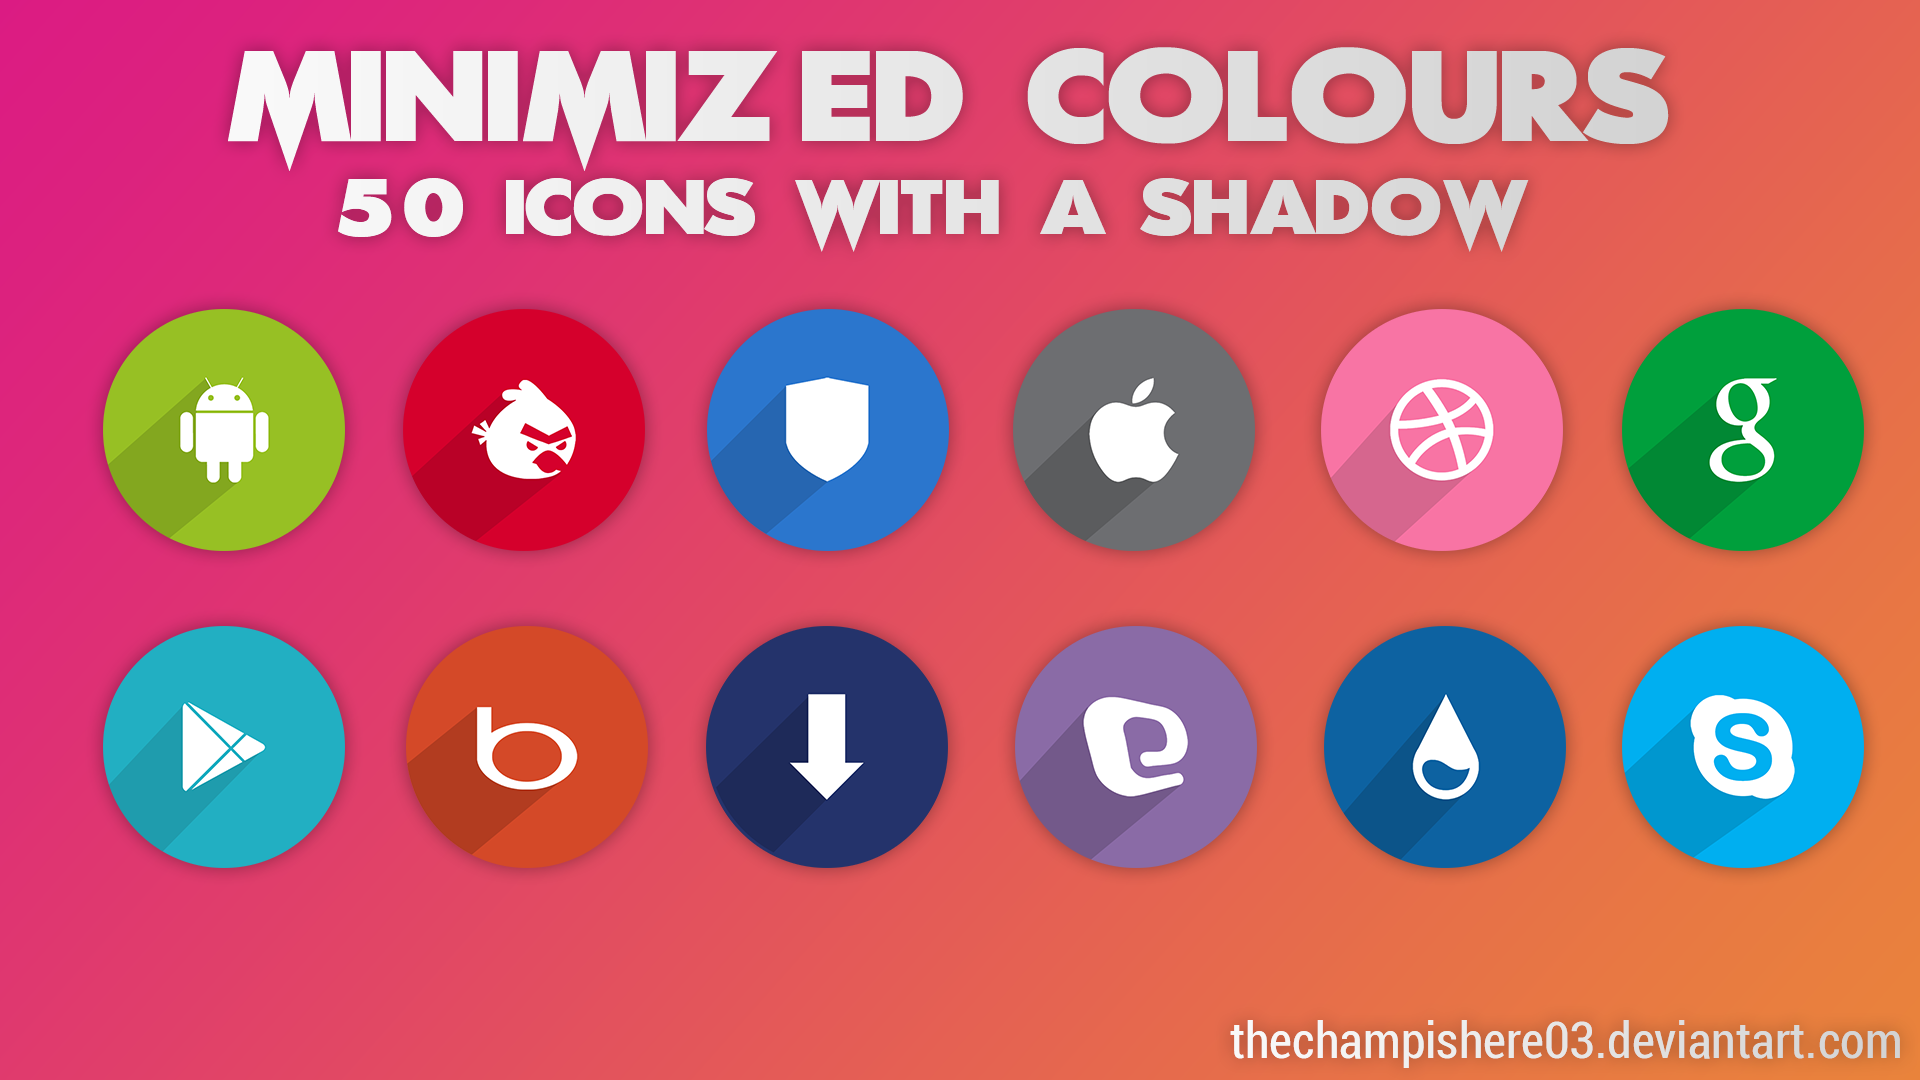 Minimized Colours Icon Pack::50 Icons by thechampishere03